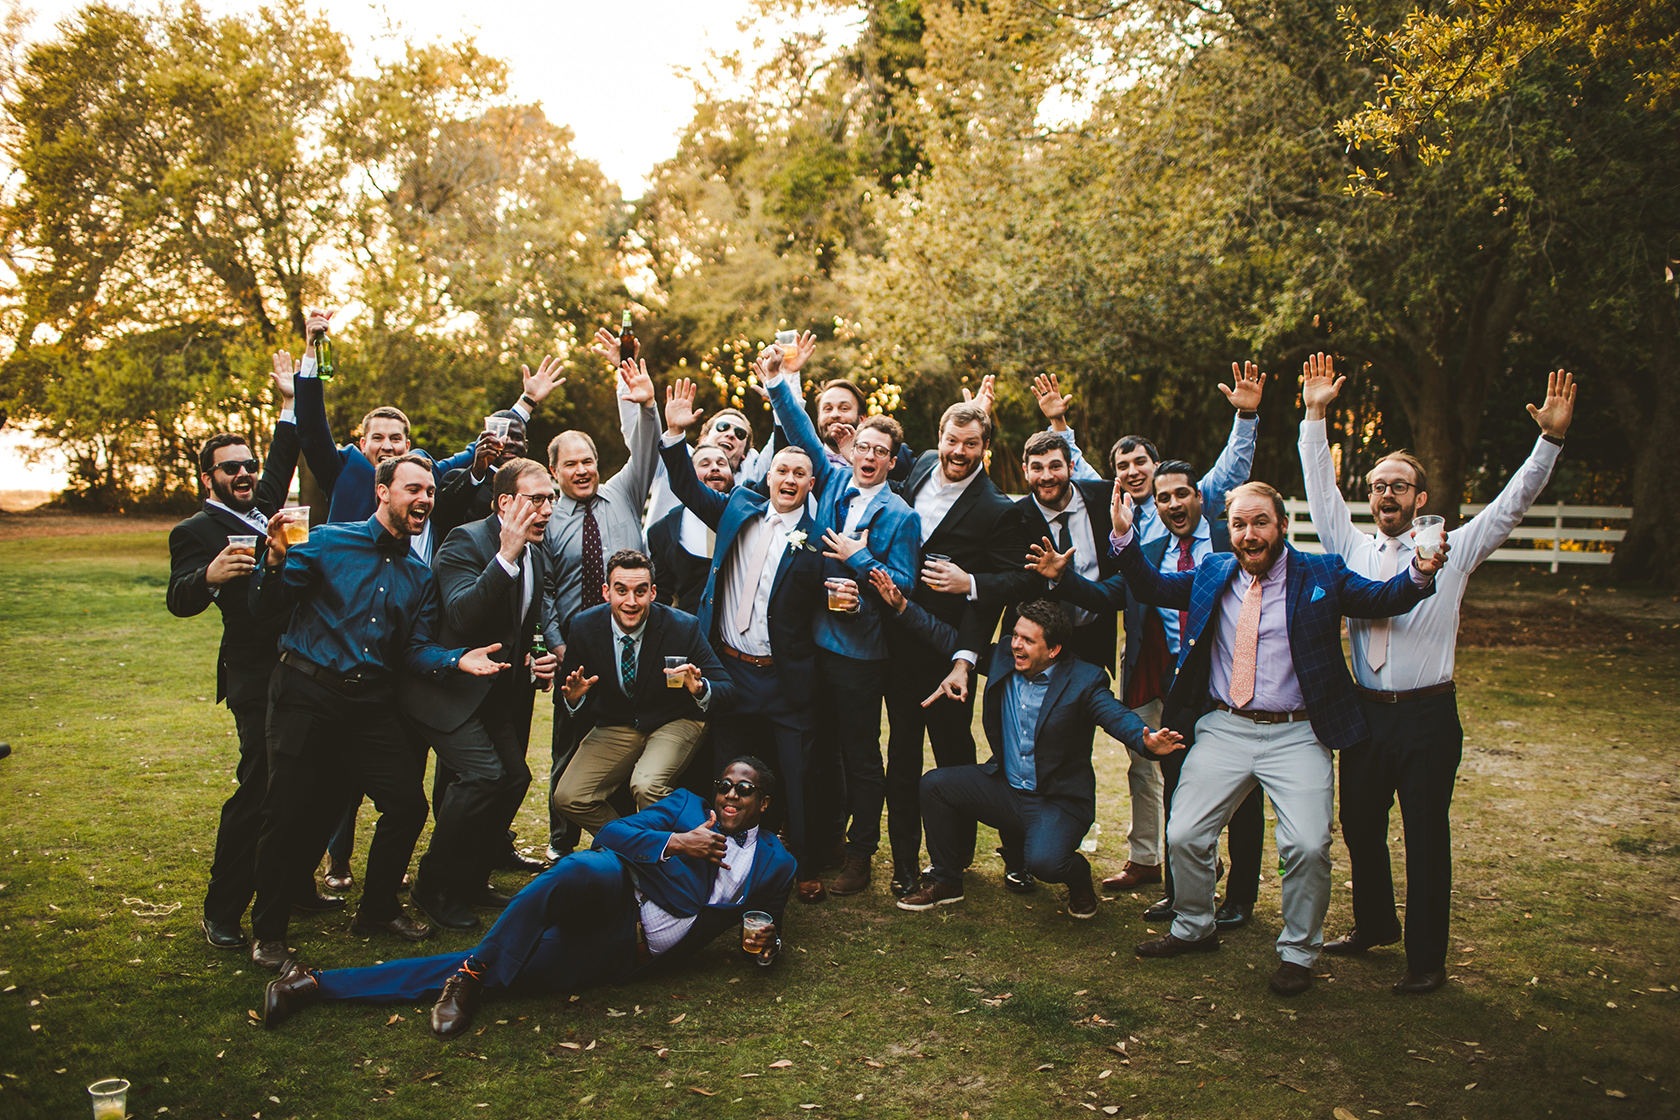 Friends of the Groom going crazy